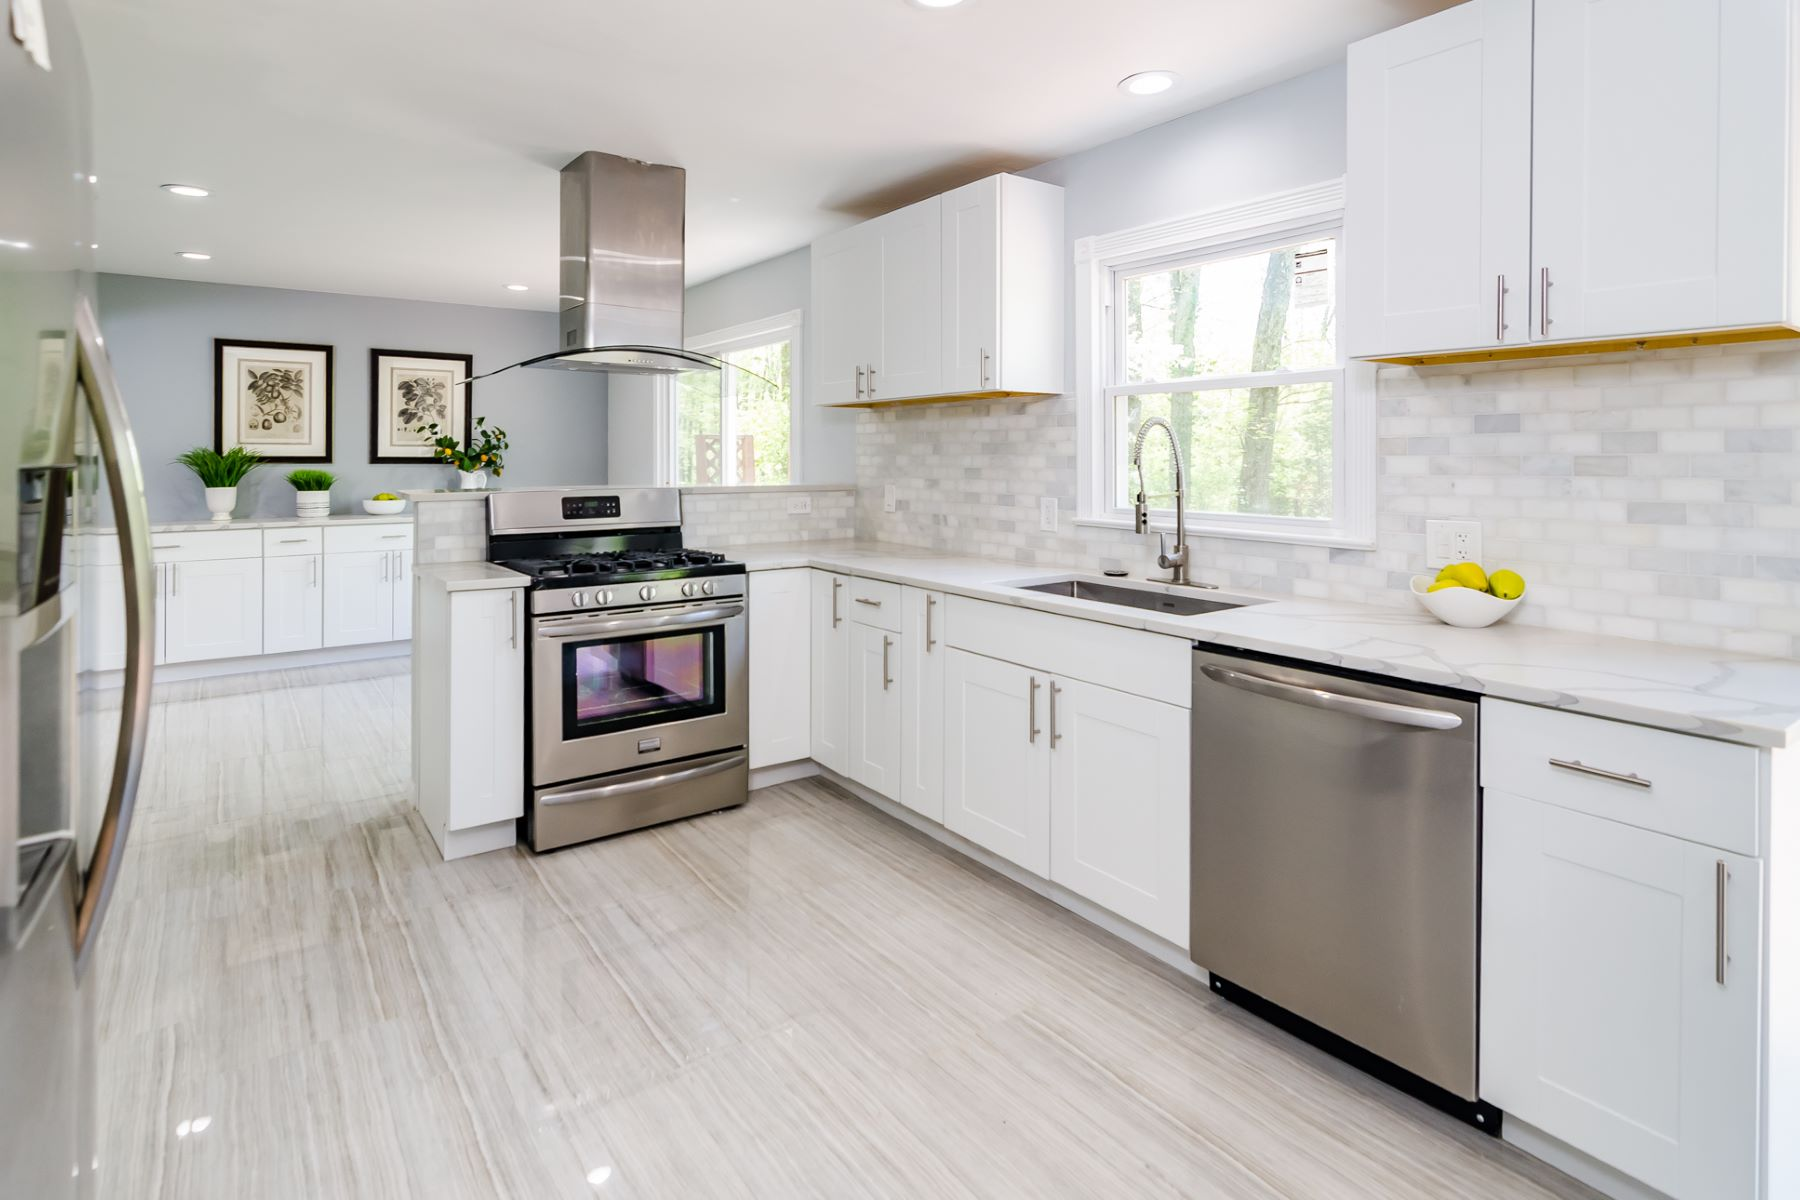 Additional photo for property listing at Fresh, Modern, and Completely Redone in Hopewell 7 Fairway Drive, Hopewell, New Jersey 08525 United States